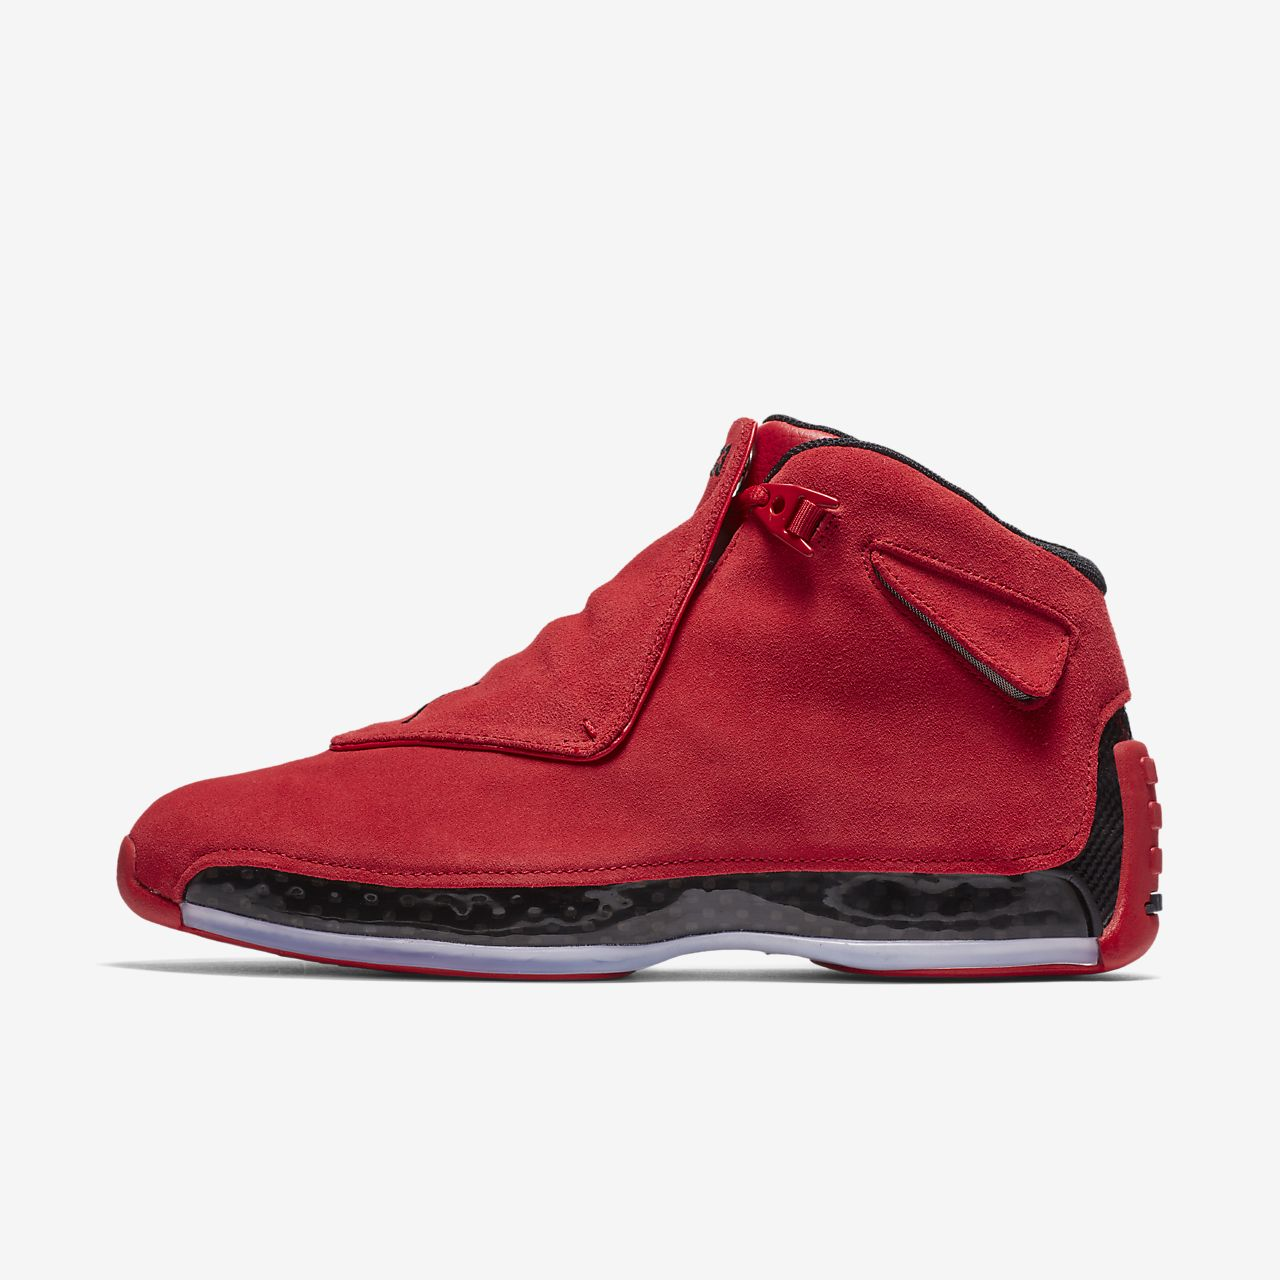 all red mens jordan shoes nz